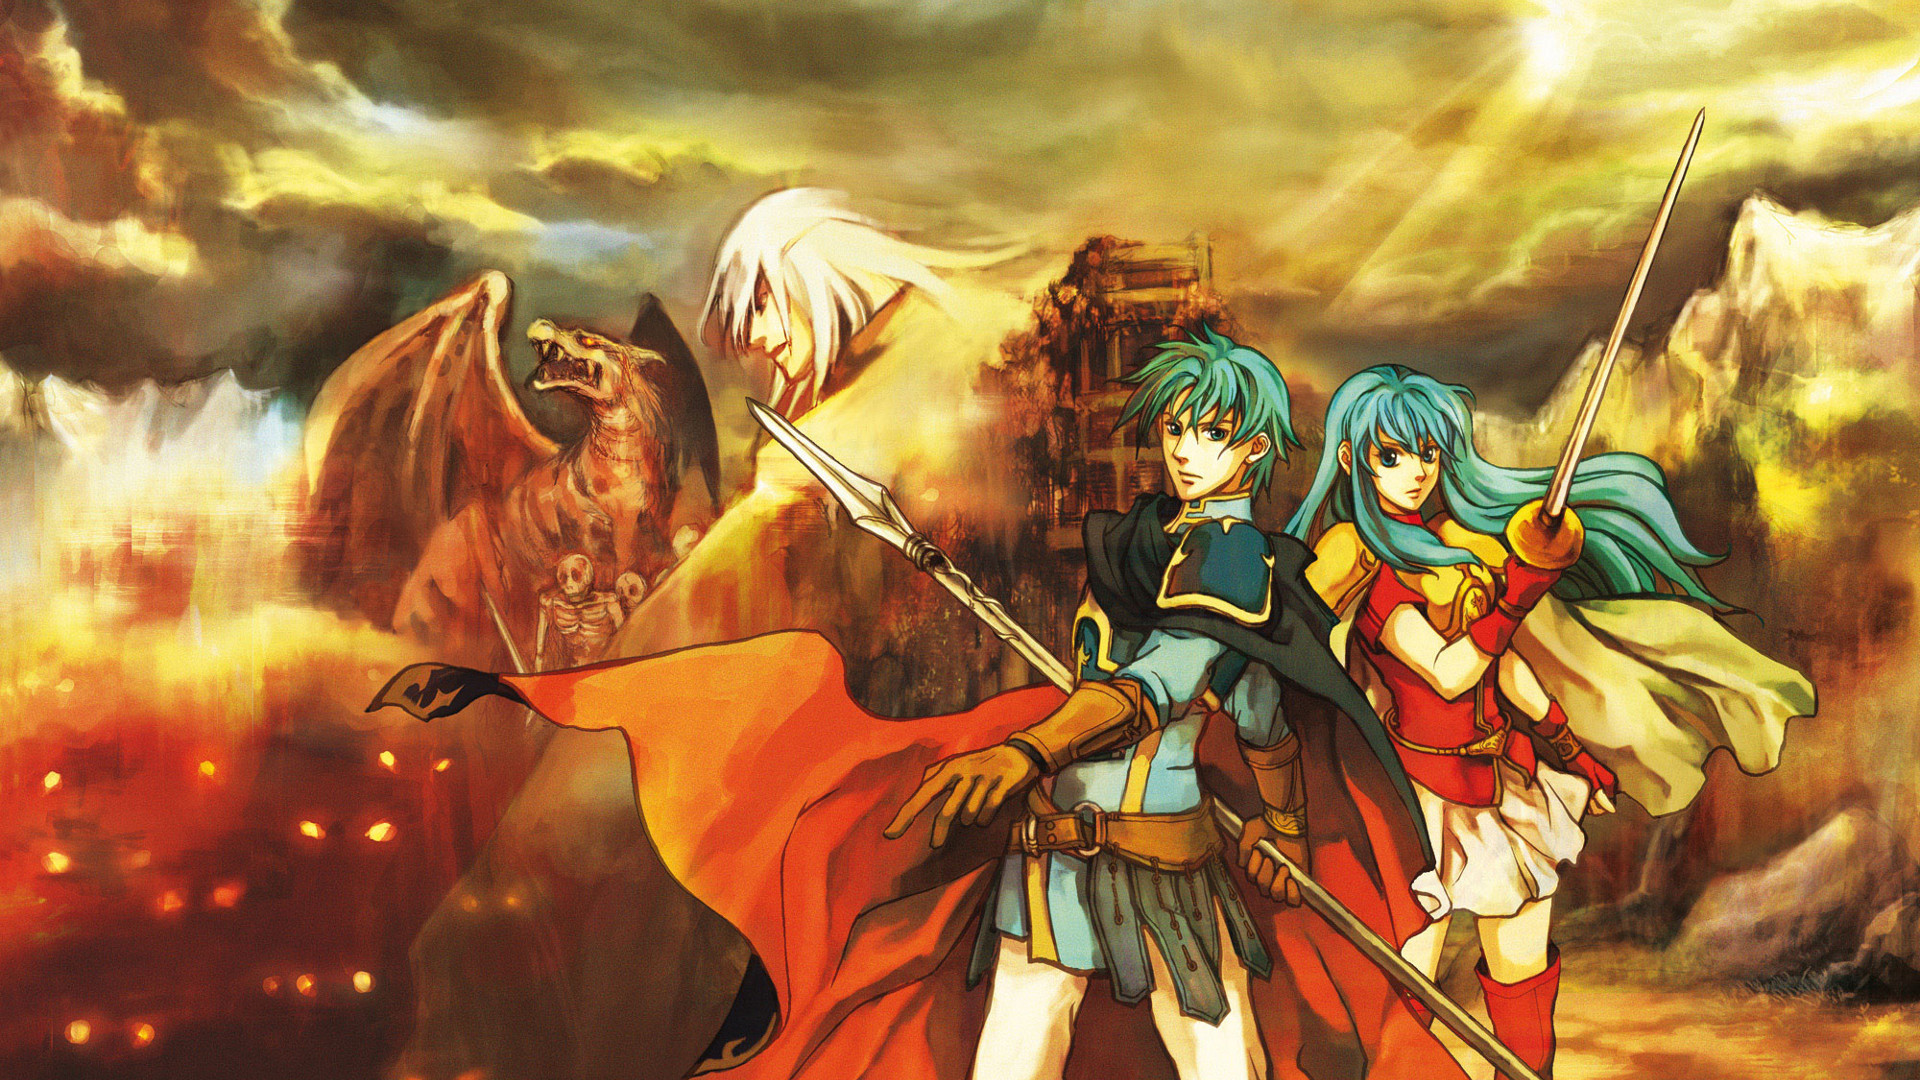 Shadow Dragon Wallpapers Hd Wallpaper Collections 4kwallpaper Wiki